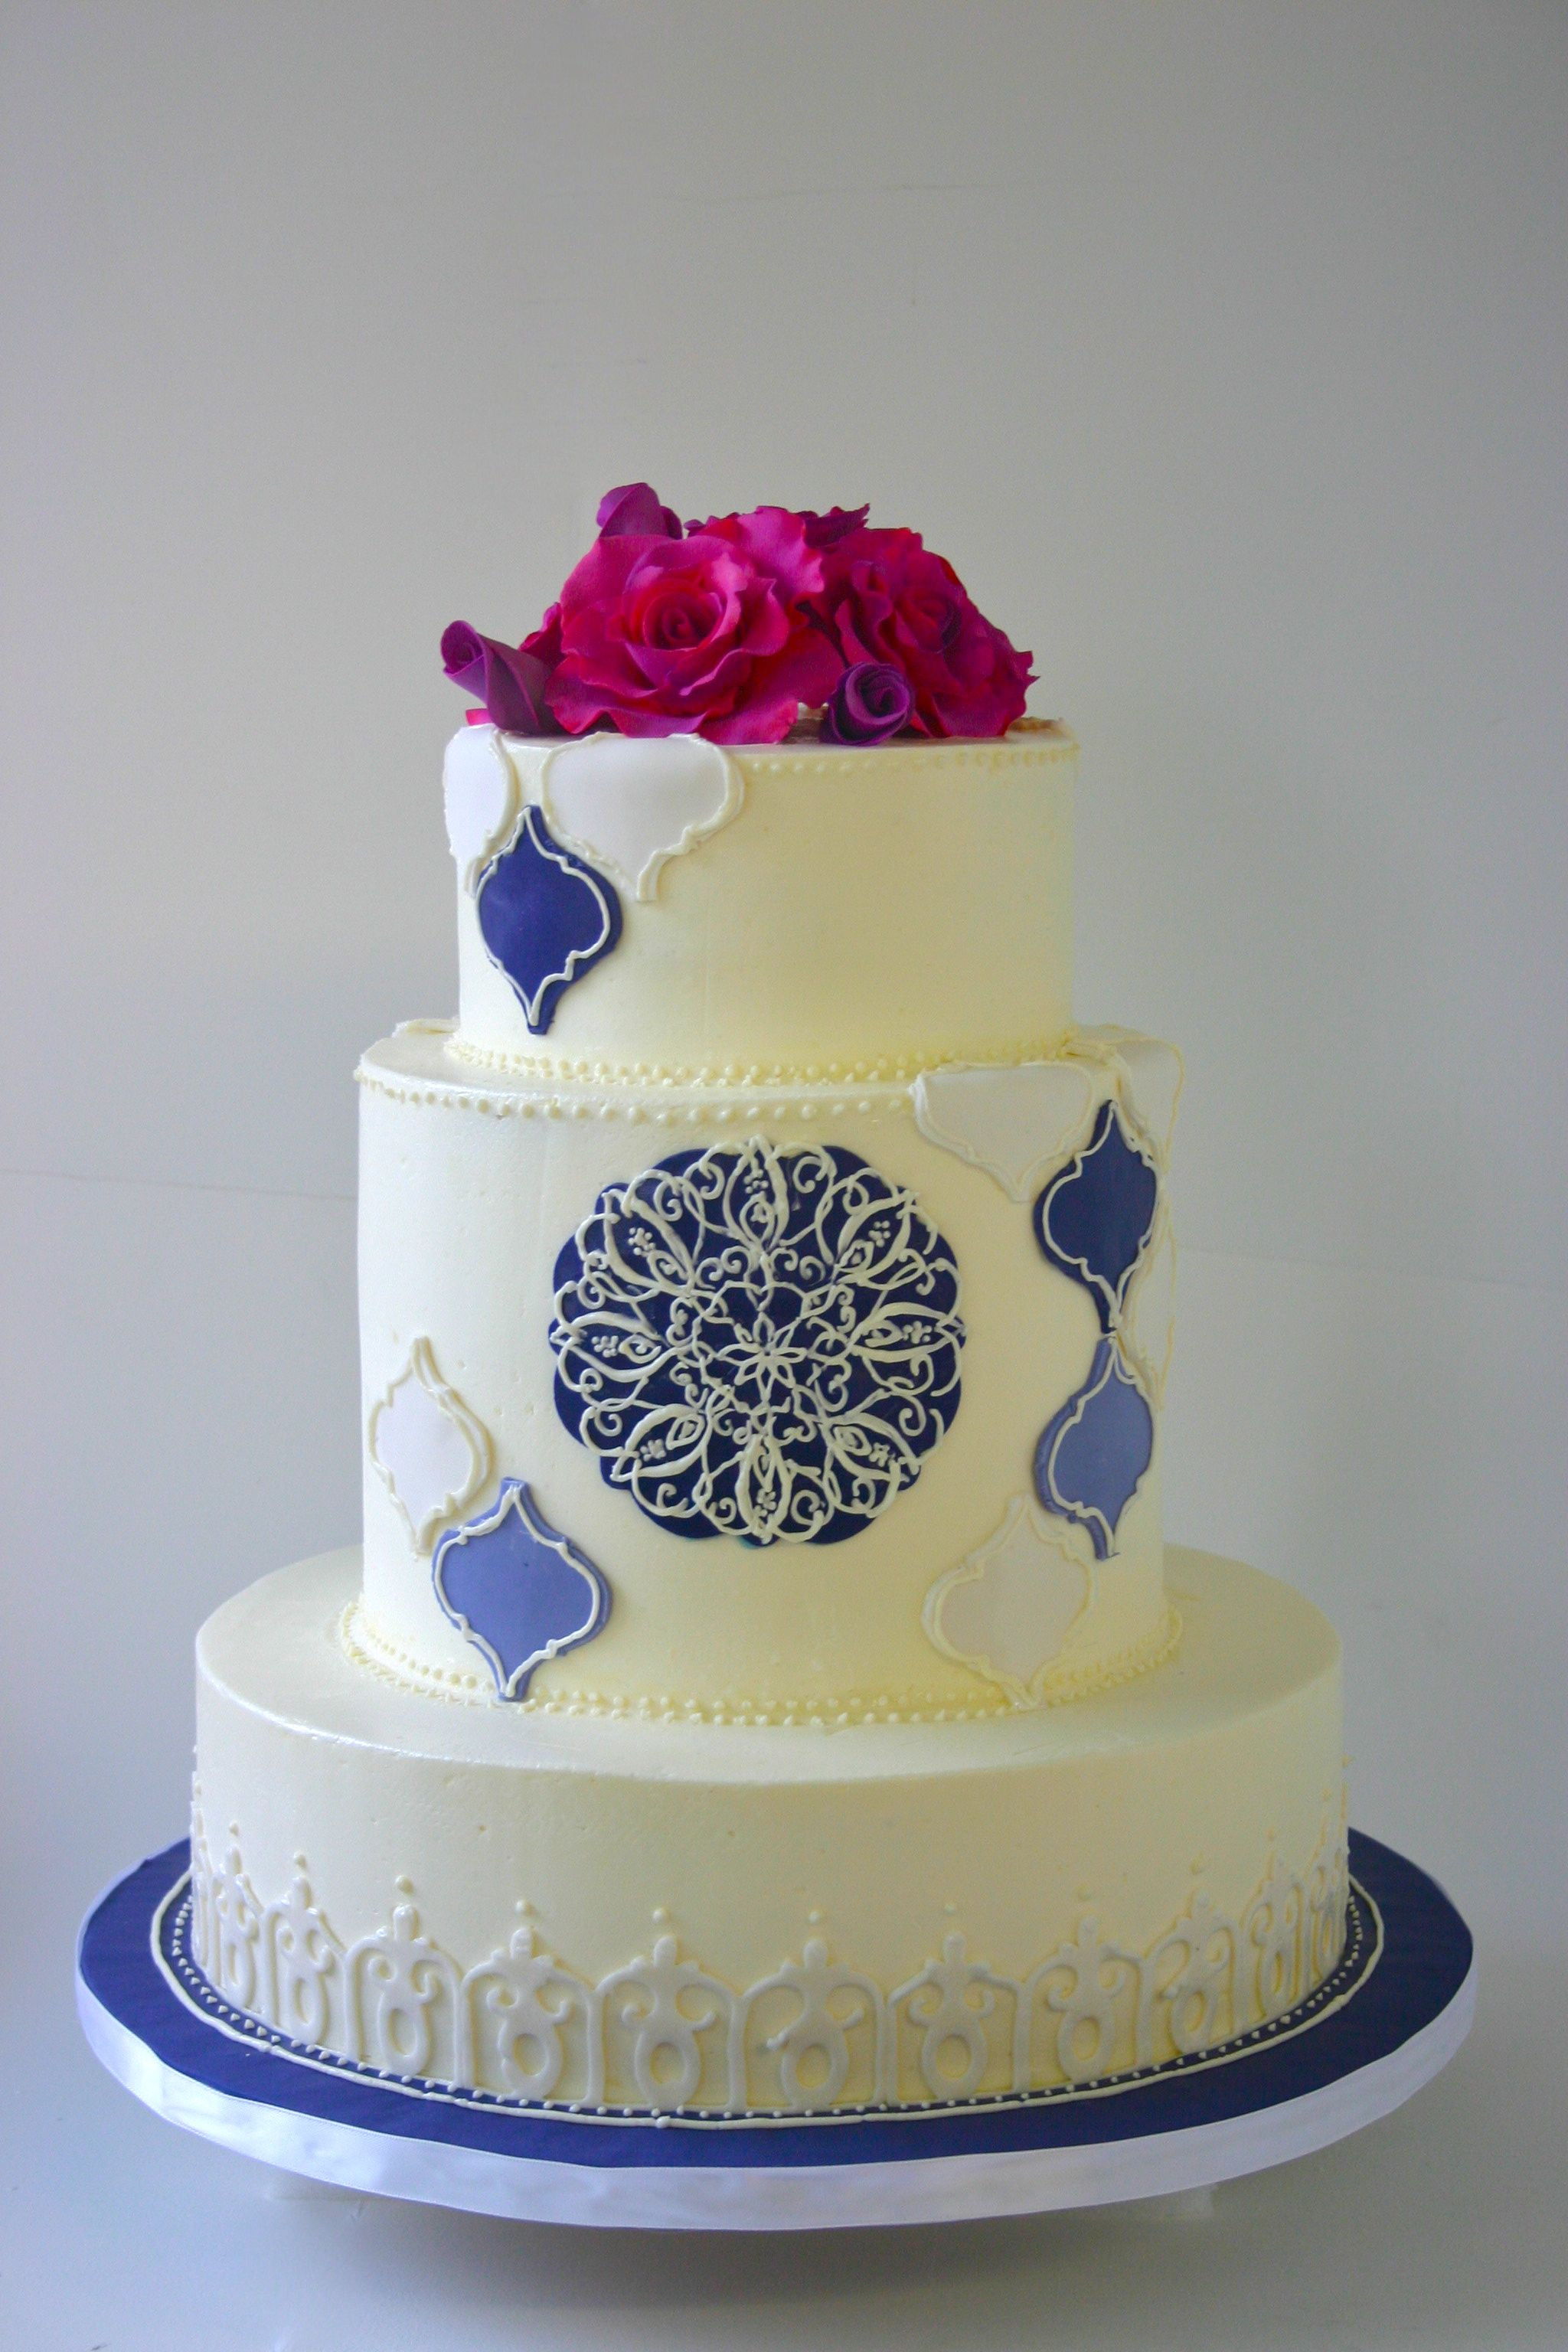 Kuchen Design Maroc A Moroccan Inspired Wedding Cake By Cakes To Remember